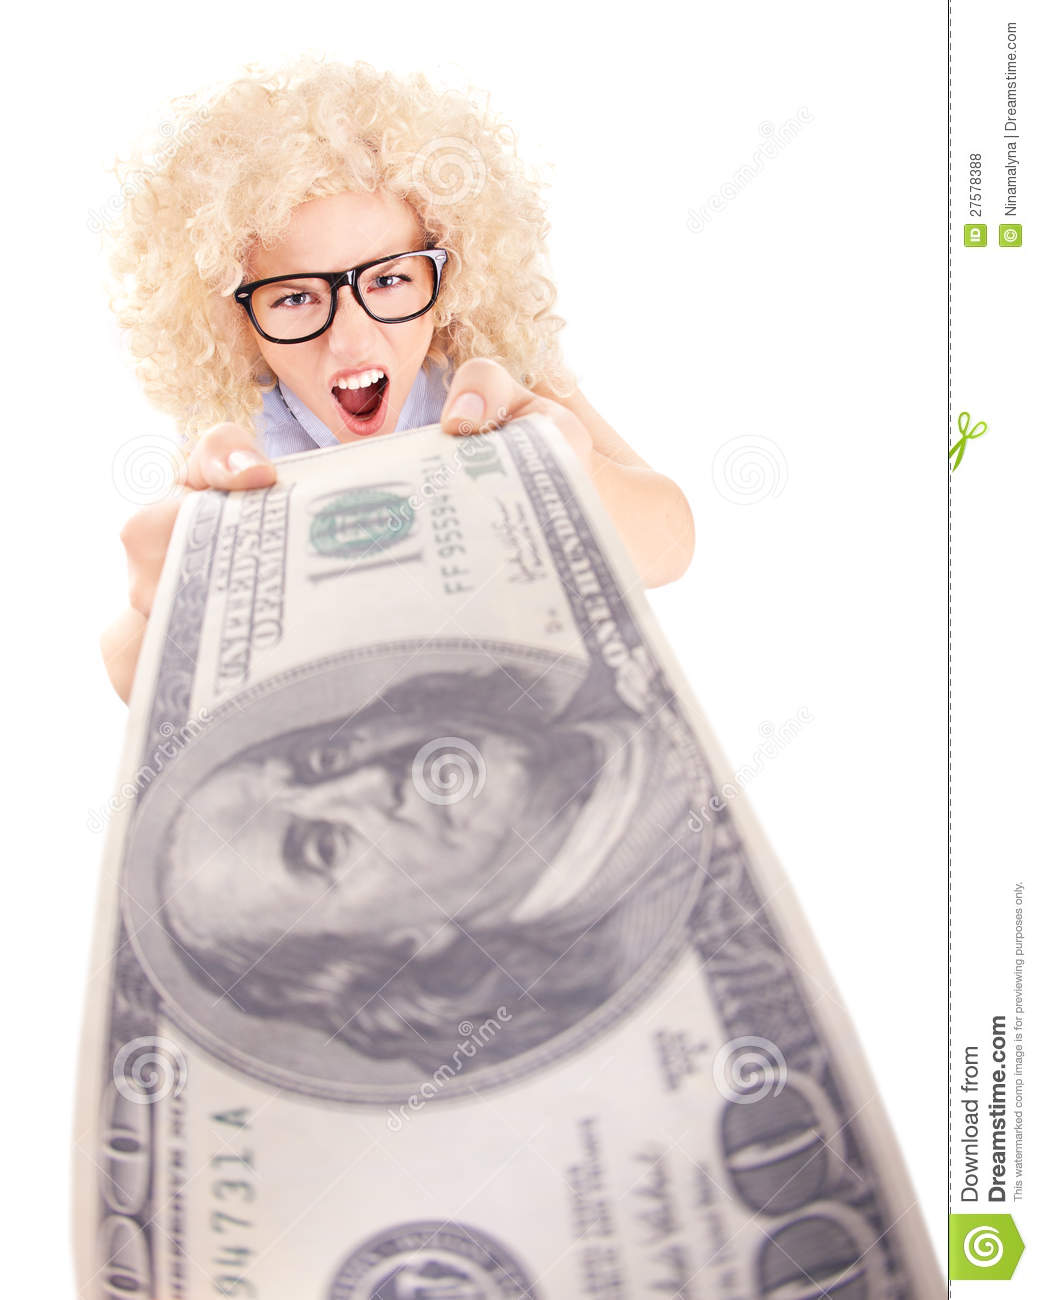 Angry woman holding hundred dollar bill